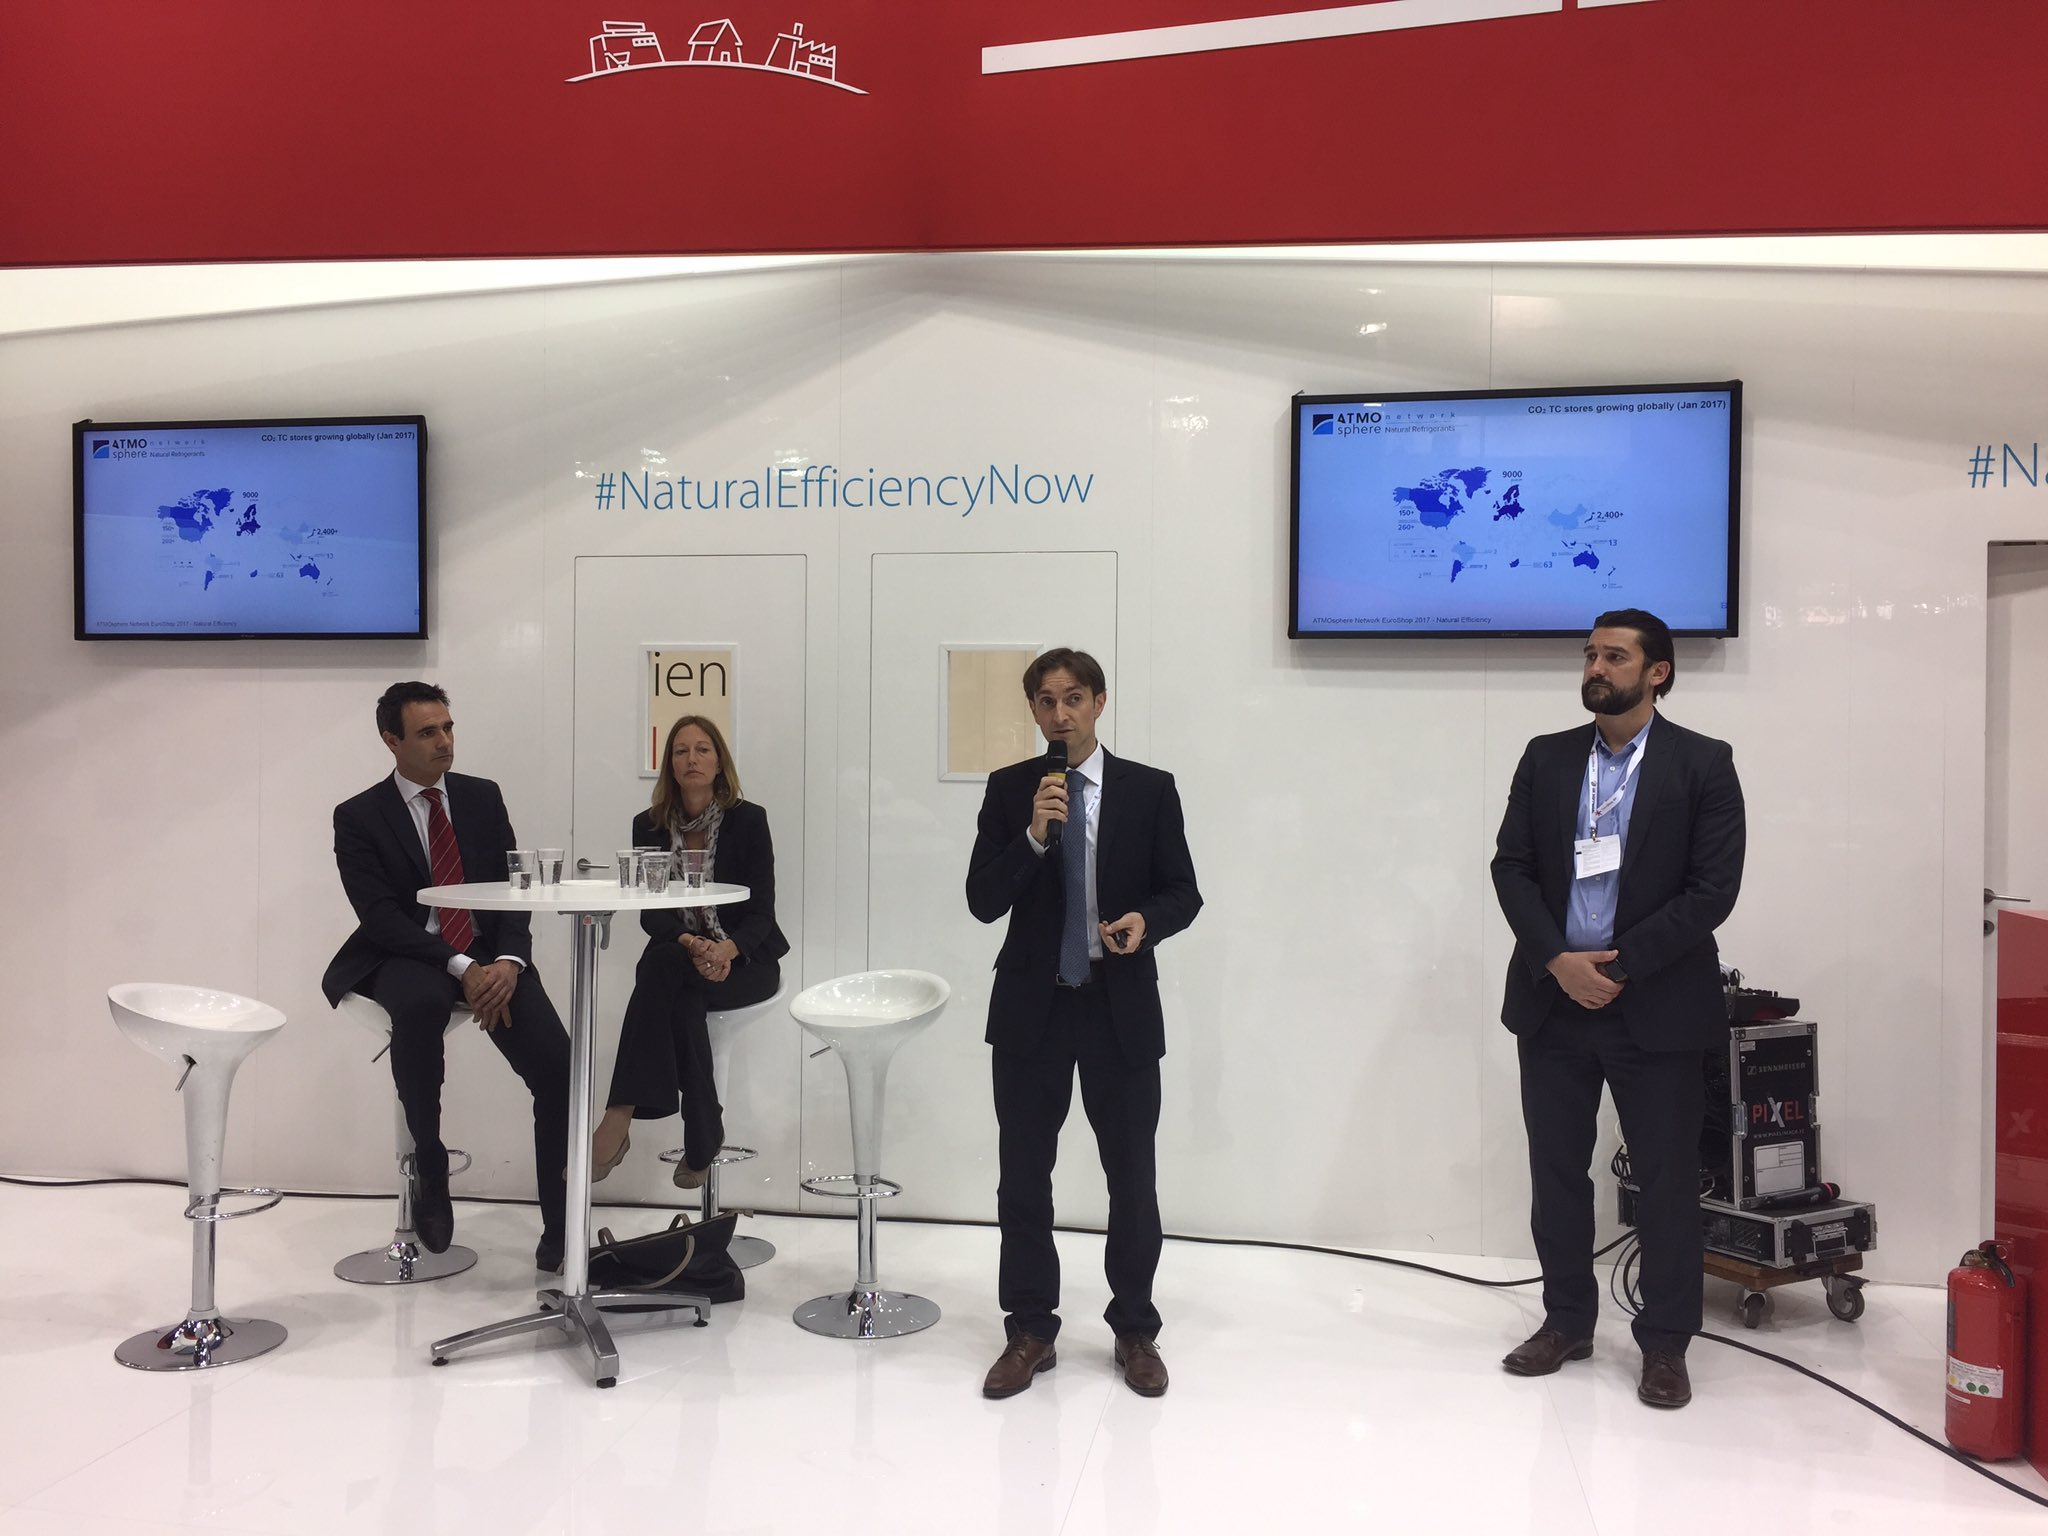 Alvaro de Oña & @marcchasserot from @shecco introduce ATMO Network hosted by @CAREL_group at #EuroShop 2017 #naturalefficiencynow https://t.co/rinIJ1zK1f